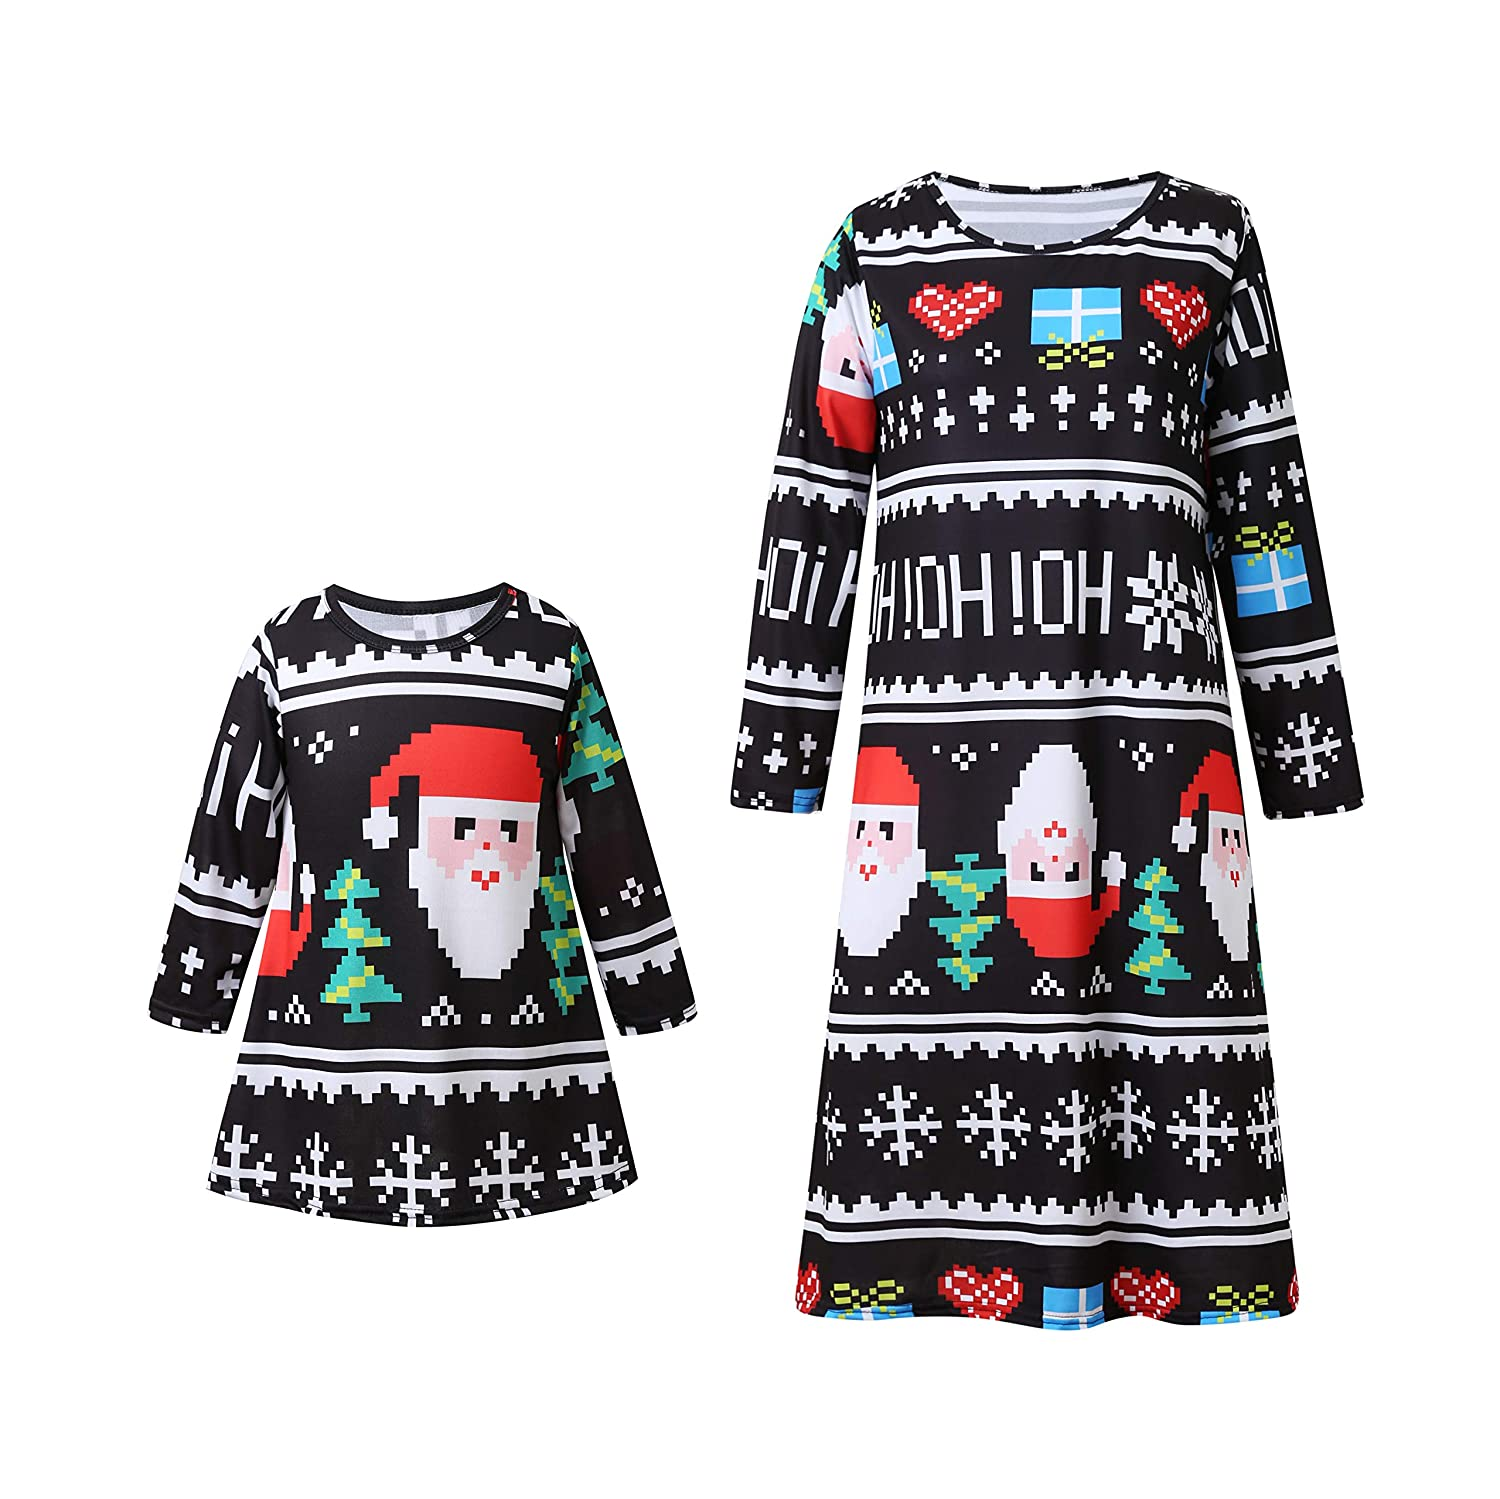 Macthing Mamma e figlia Christmas Dress Manica lunga Babbo Natale Albero stampato Party Outfit shiningup